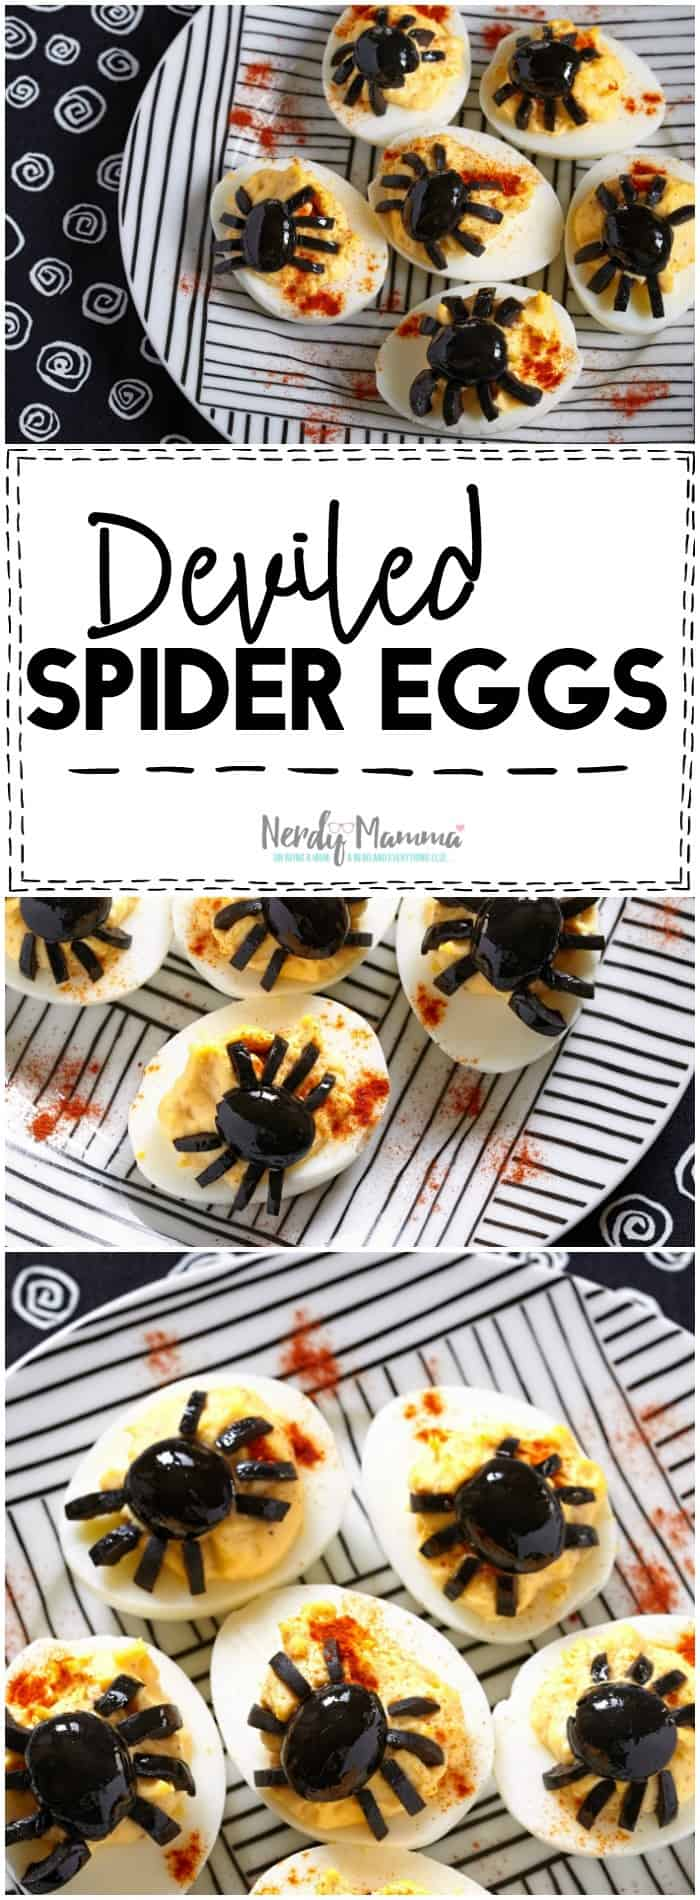 Oh my! What an easy Halloween Party appetizer! I love this simple deviled spider eggs recipe!